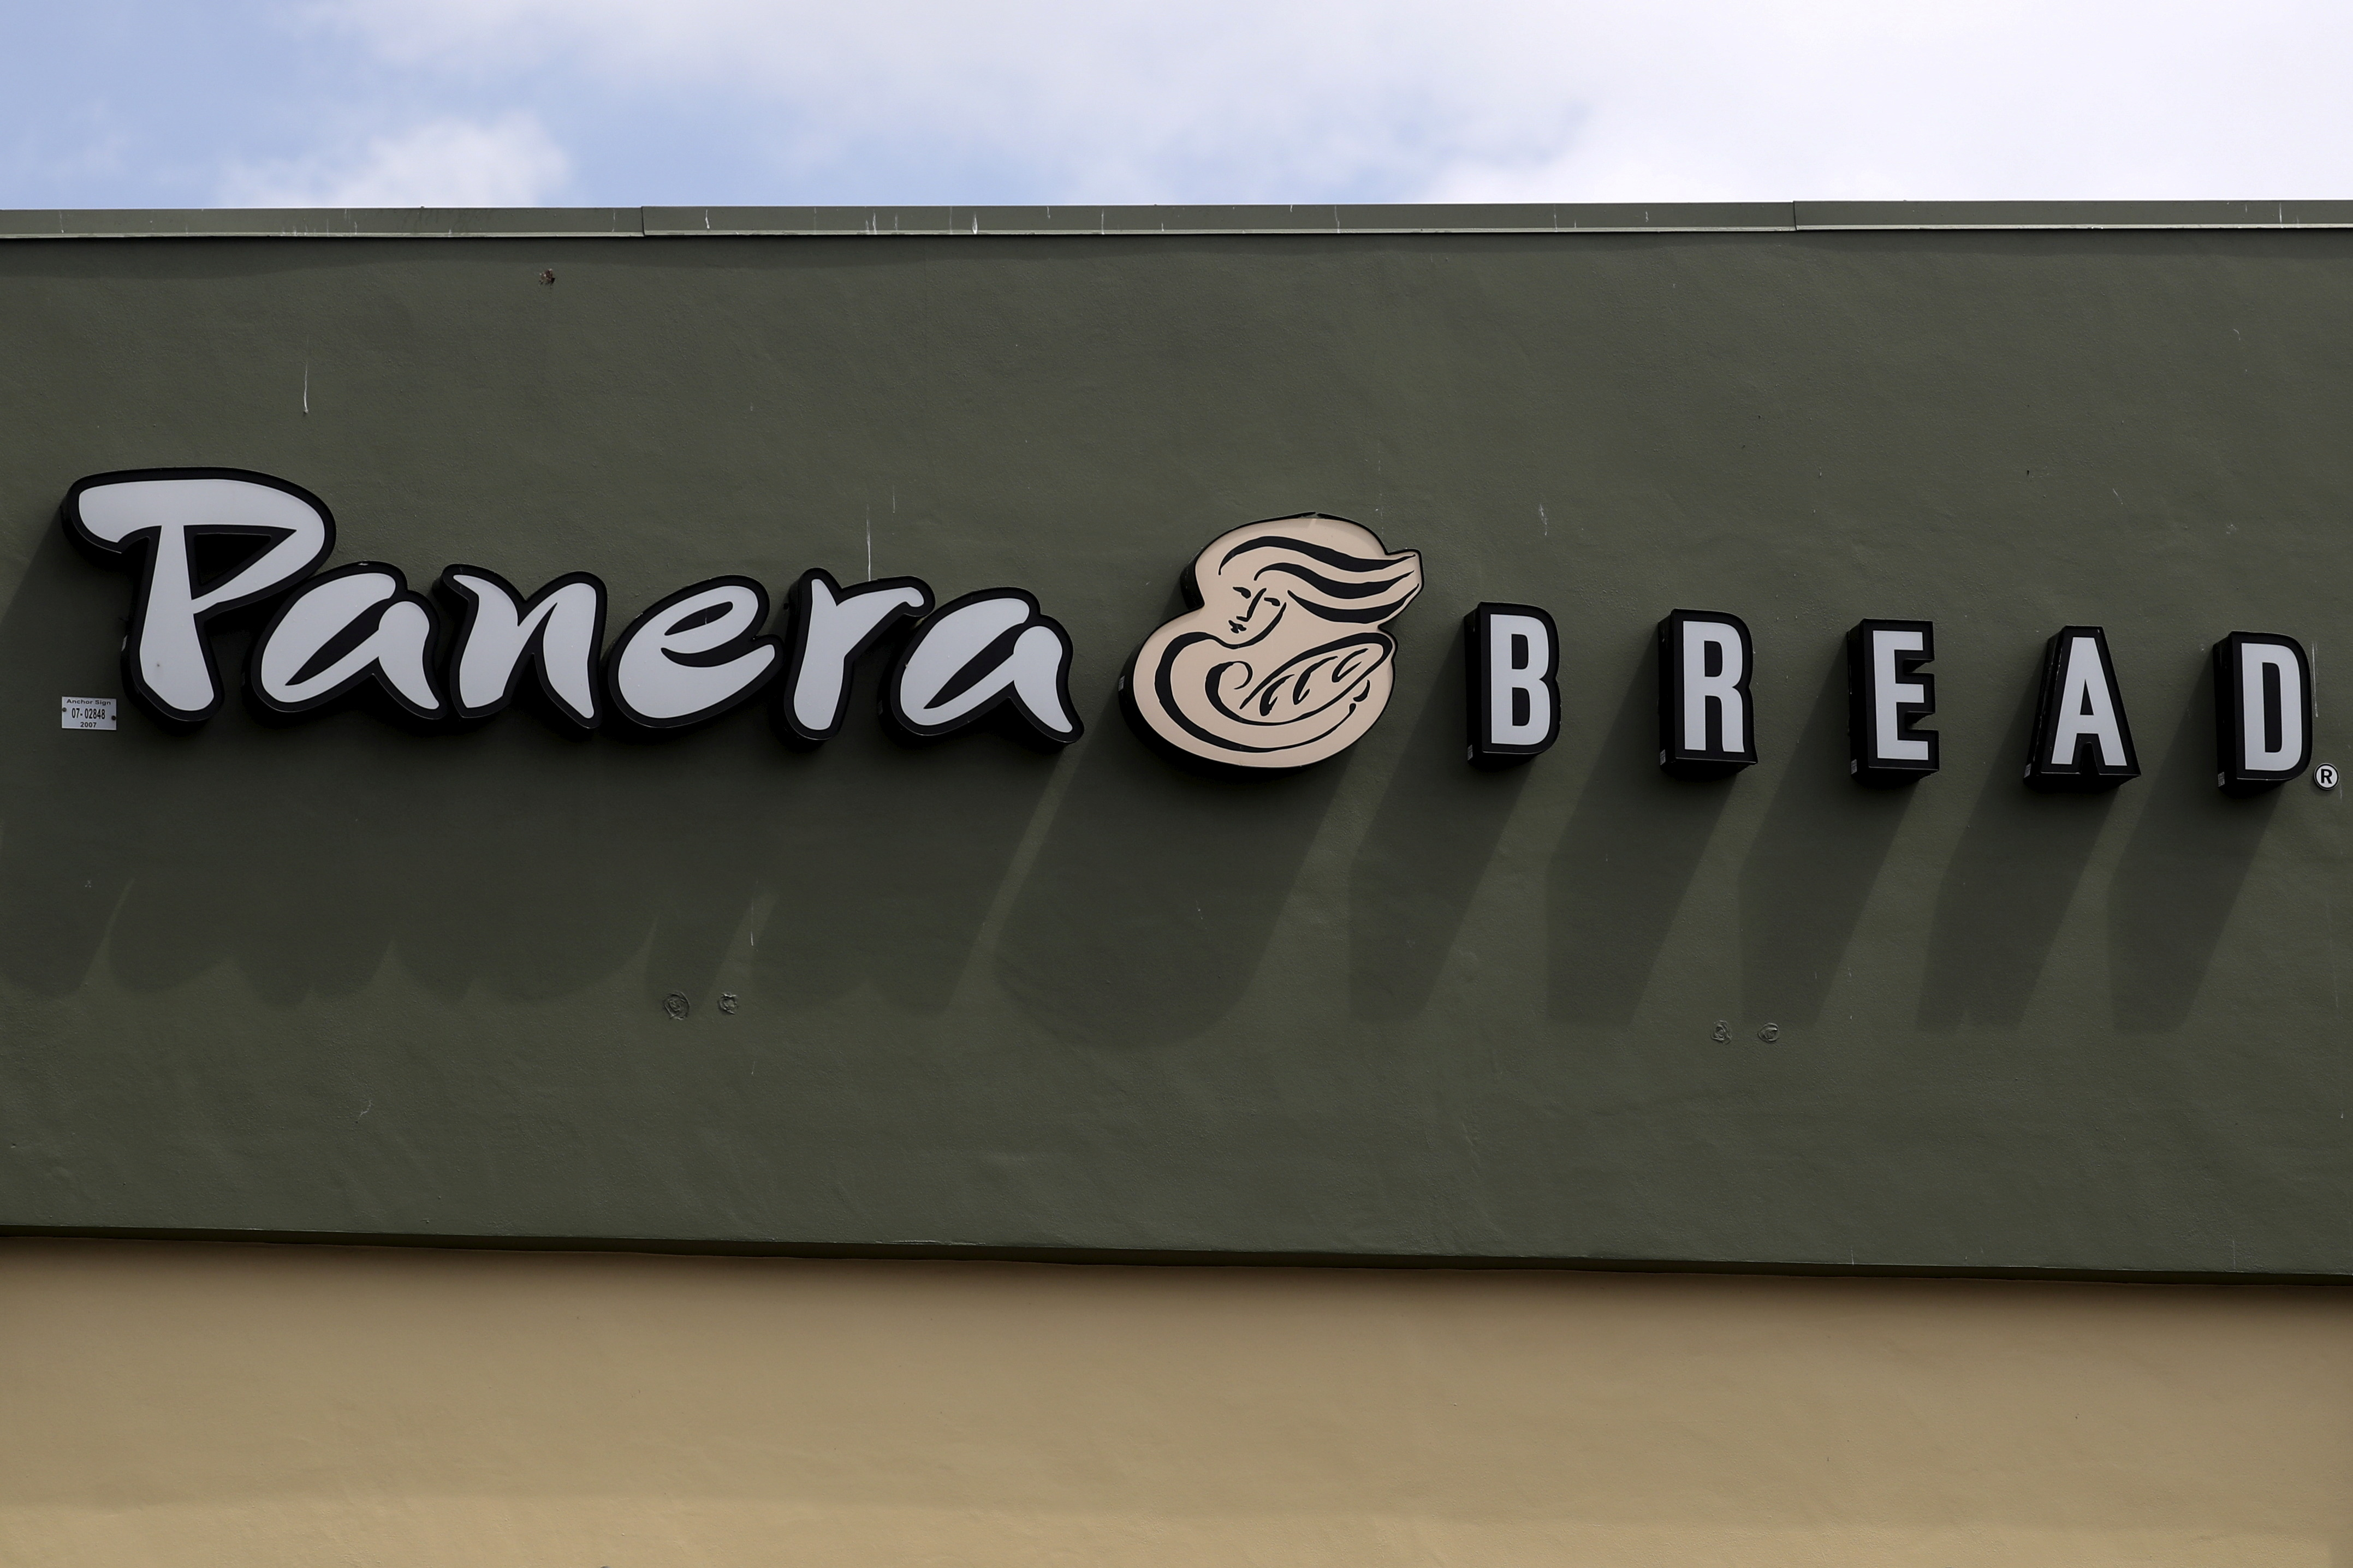 A Panera restaurant logo is pictured on a building in North Miami, Florida March 19, 2016. REUTERS/Carlo Allegri/File Photo